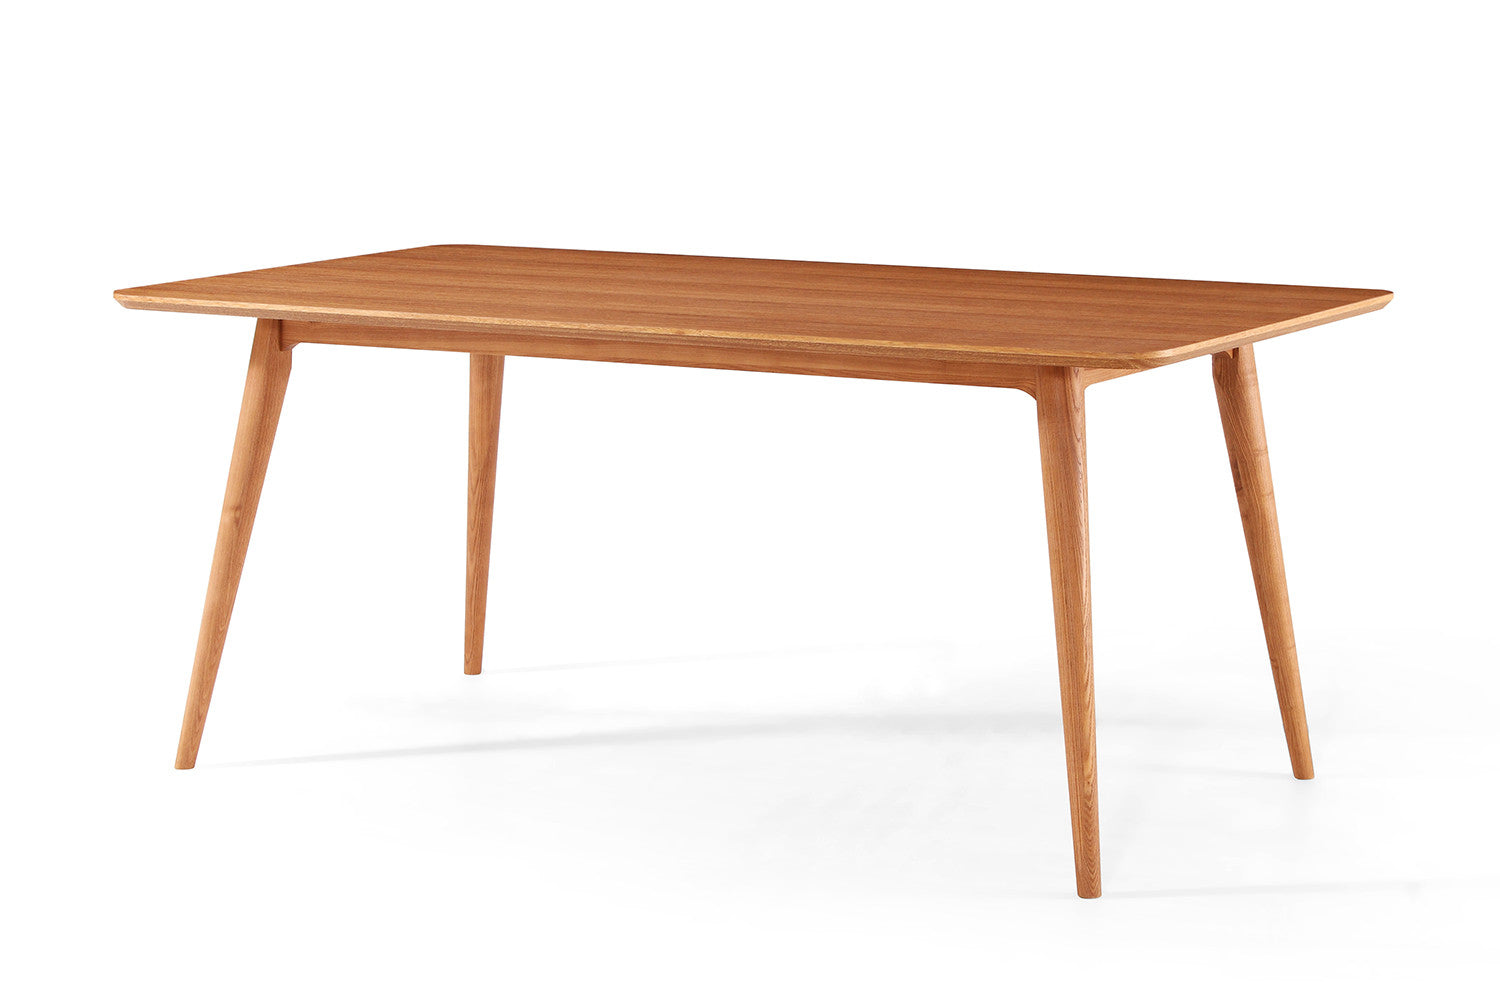 Table de salle manger design en bois julia dewarens for Table de salle a manger